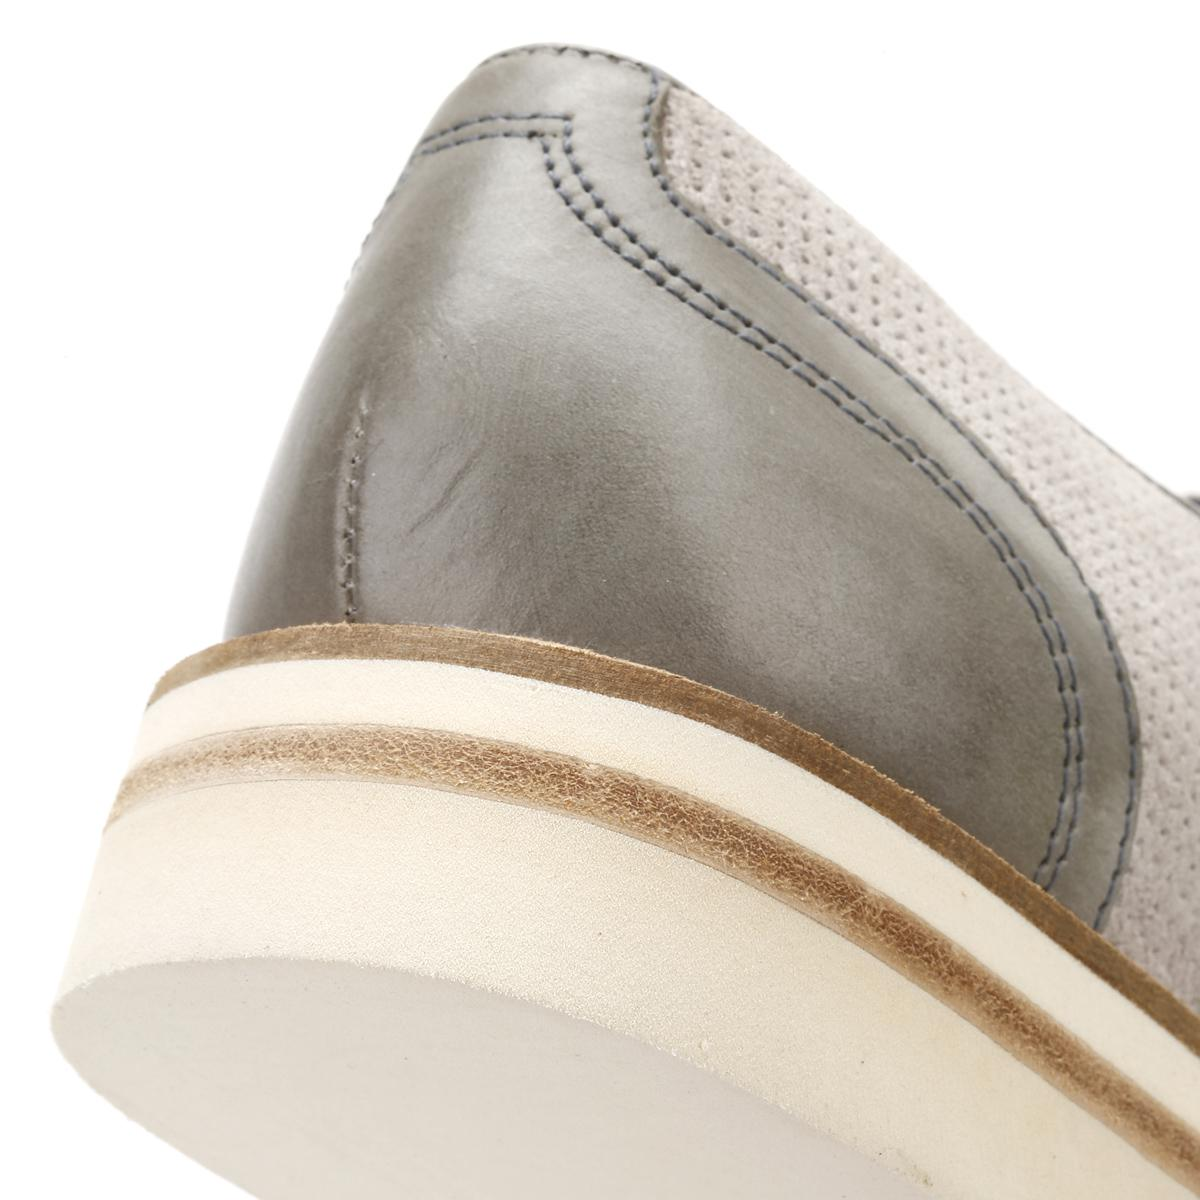 2cc3663d2a4c1c Lyst - Ted Baker Mens Light Grey Siablo Perforated Suede Shoes in ...